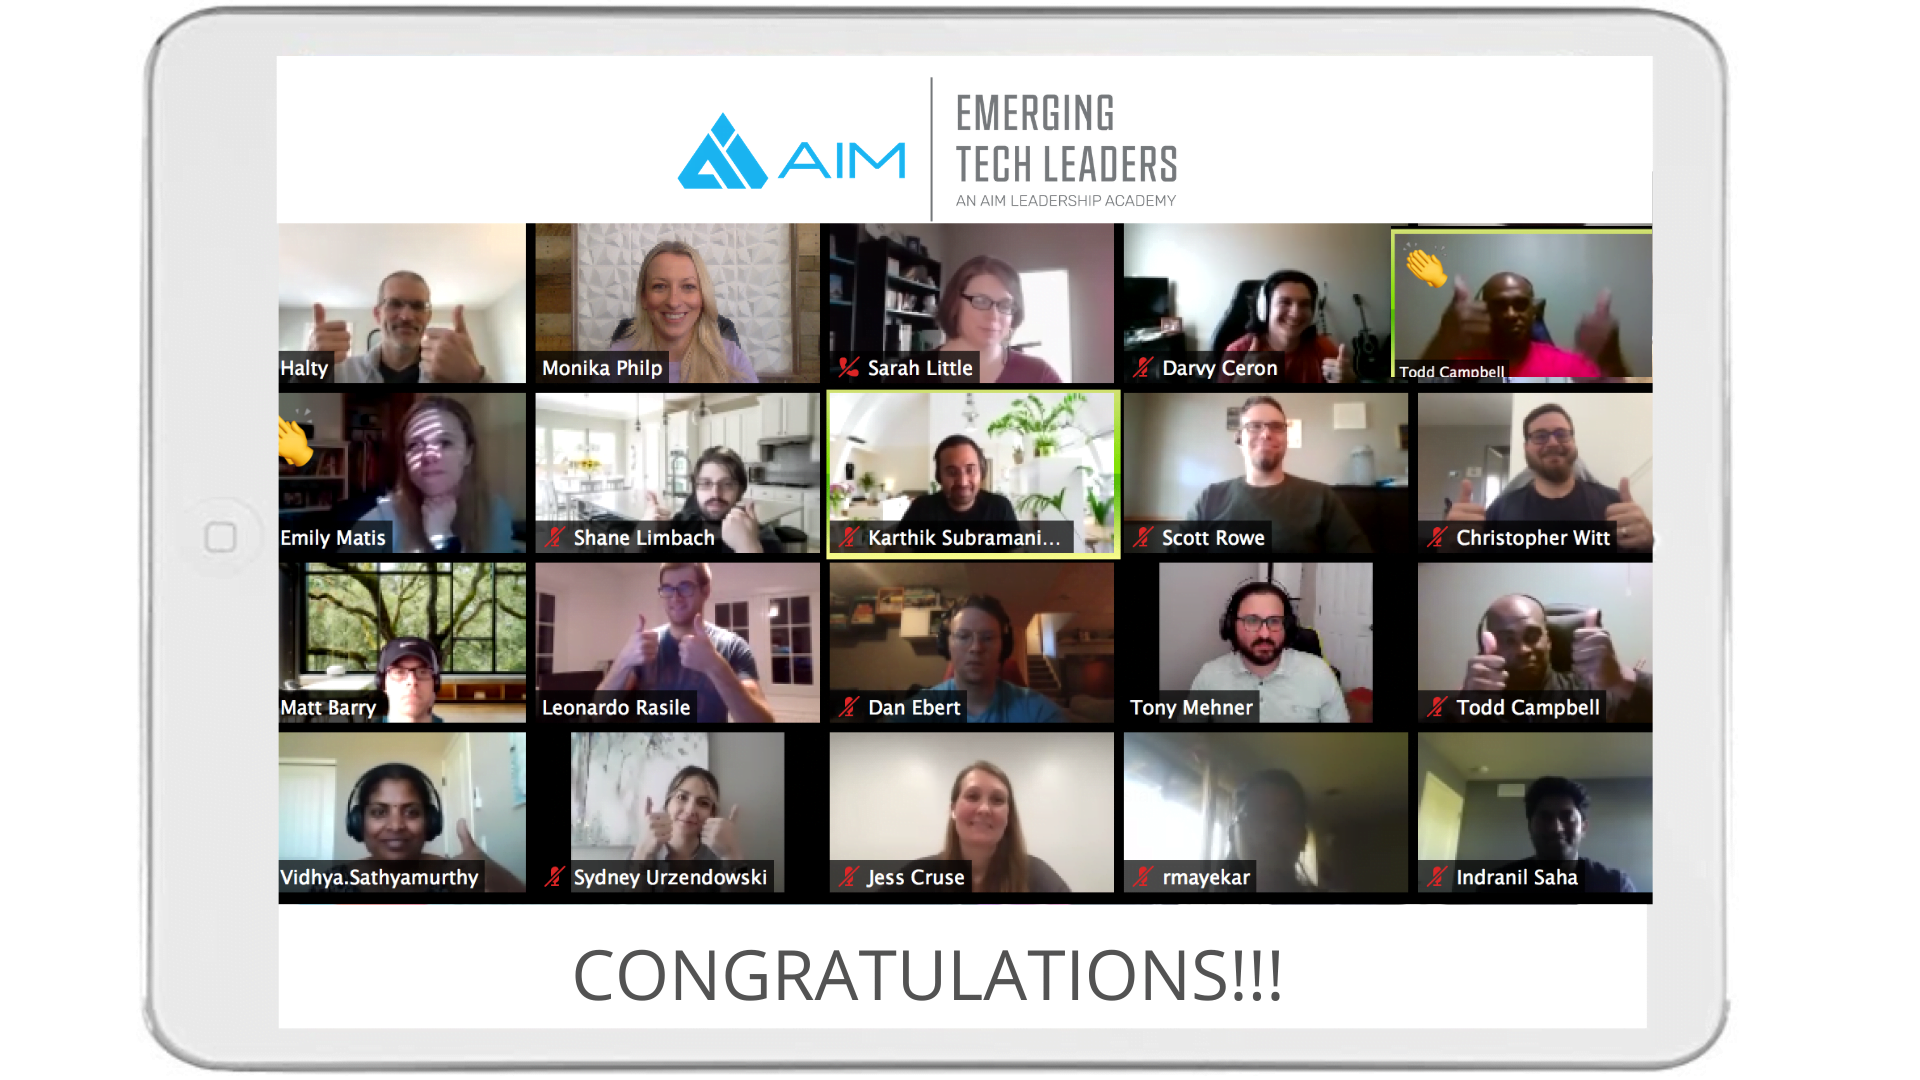 AIM's second all-virtual Emerging Tech Leaders Academy cohort celebrates graduation